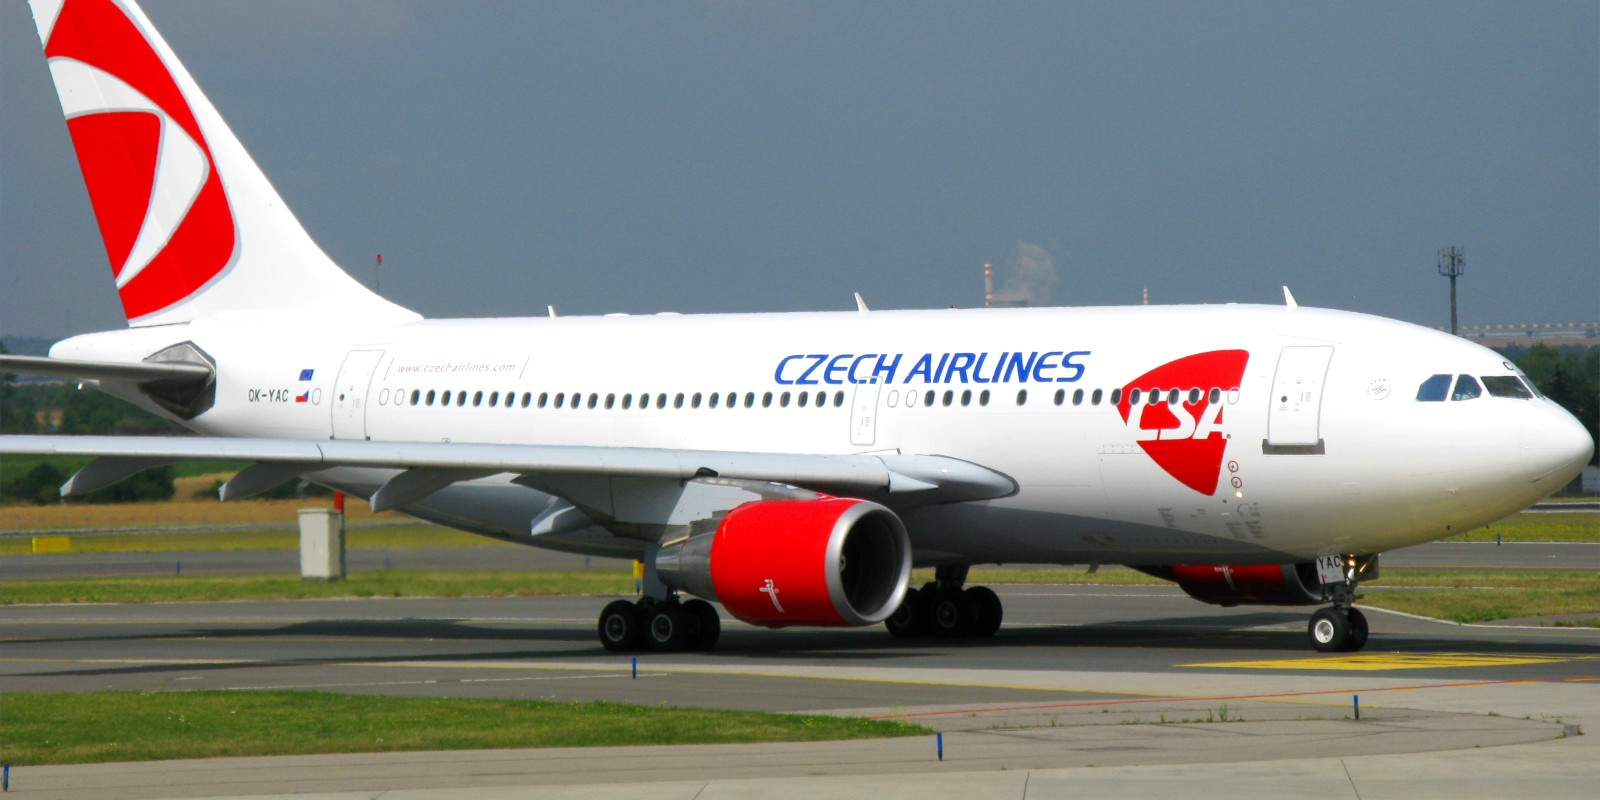 A Czech Airlines plane resting on the runway.